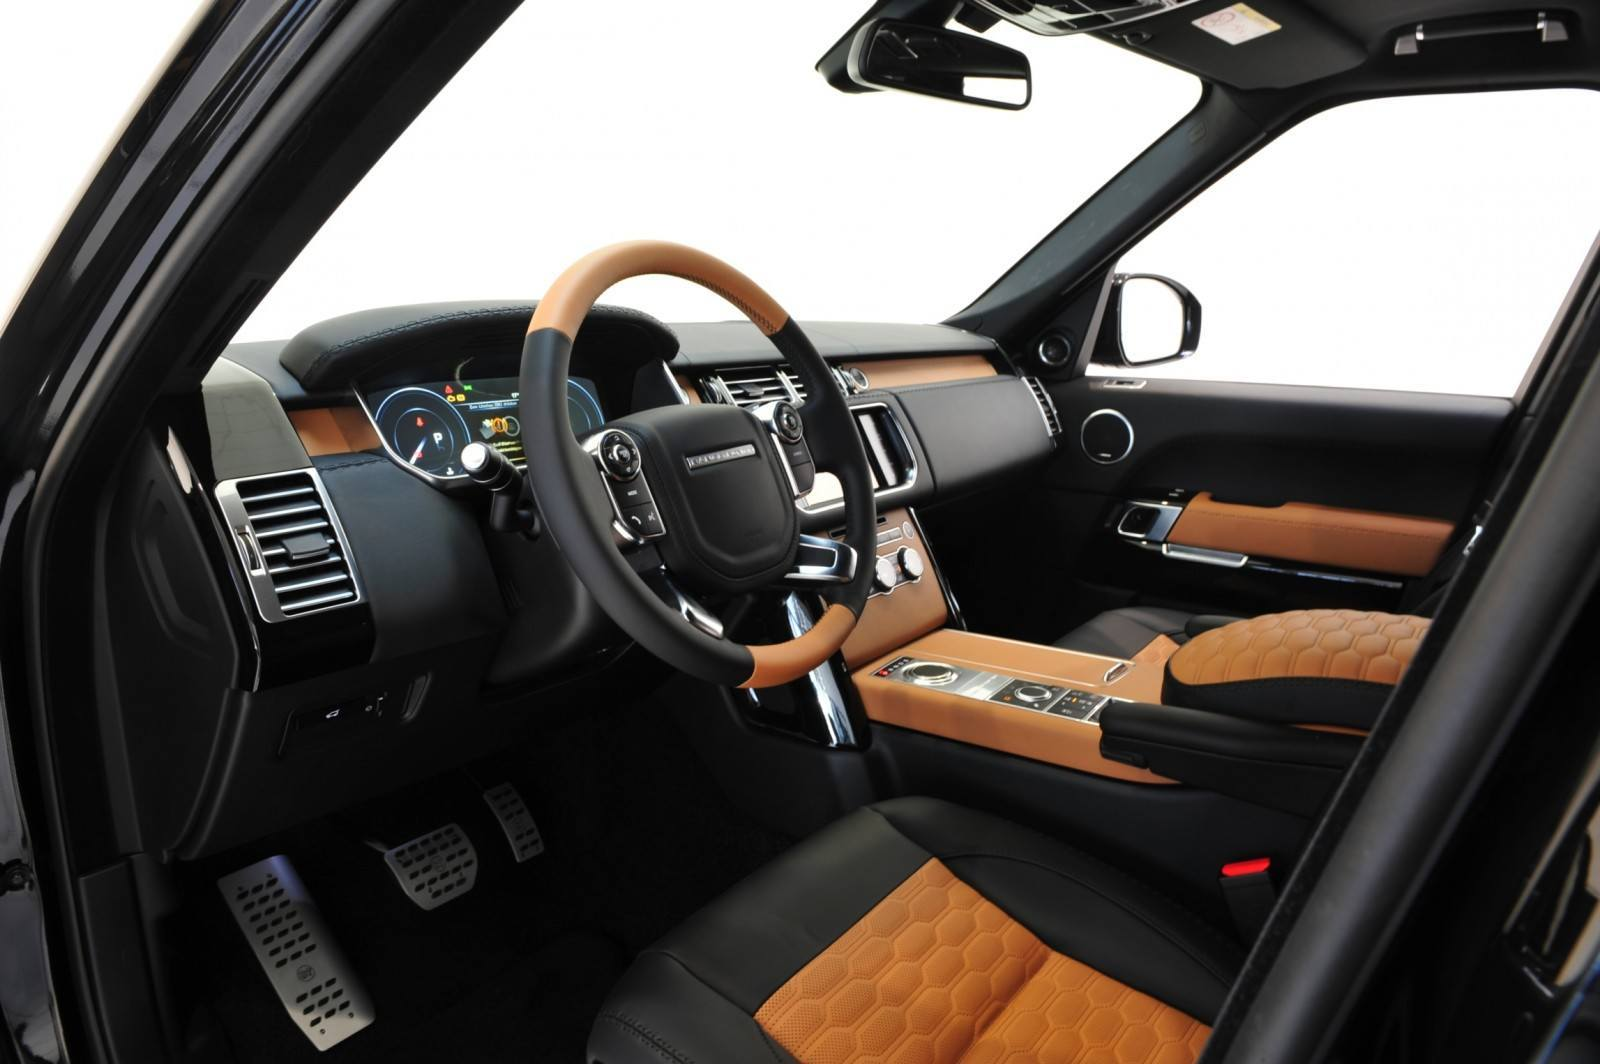 2013-2015 Range Rover By StarTech Brings Best of BRABUS Tech to Lux SUV King 55